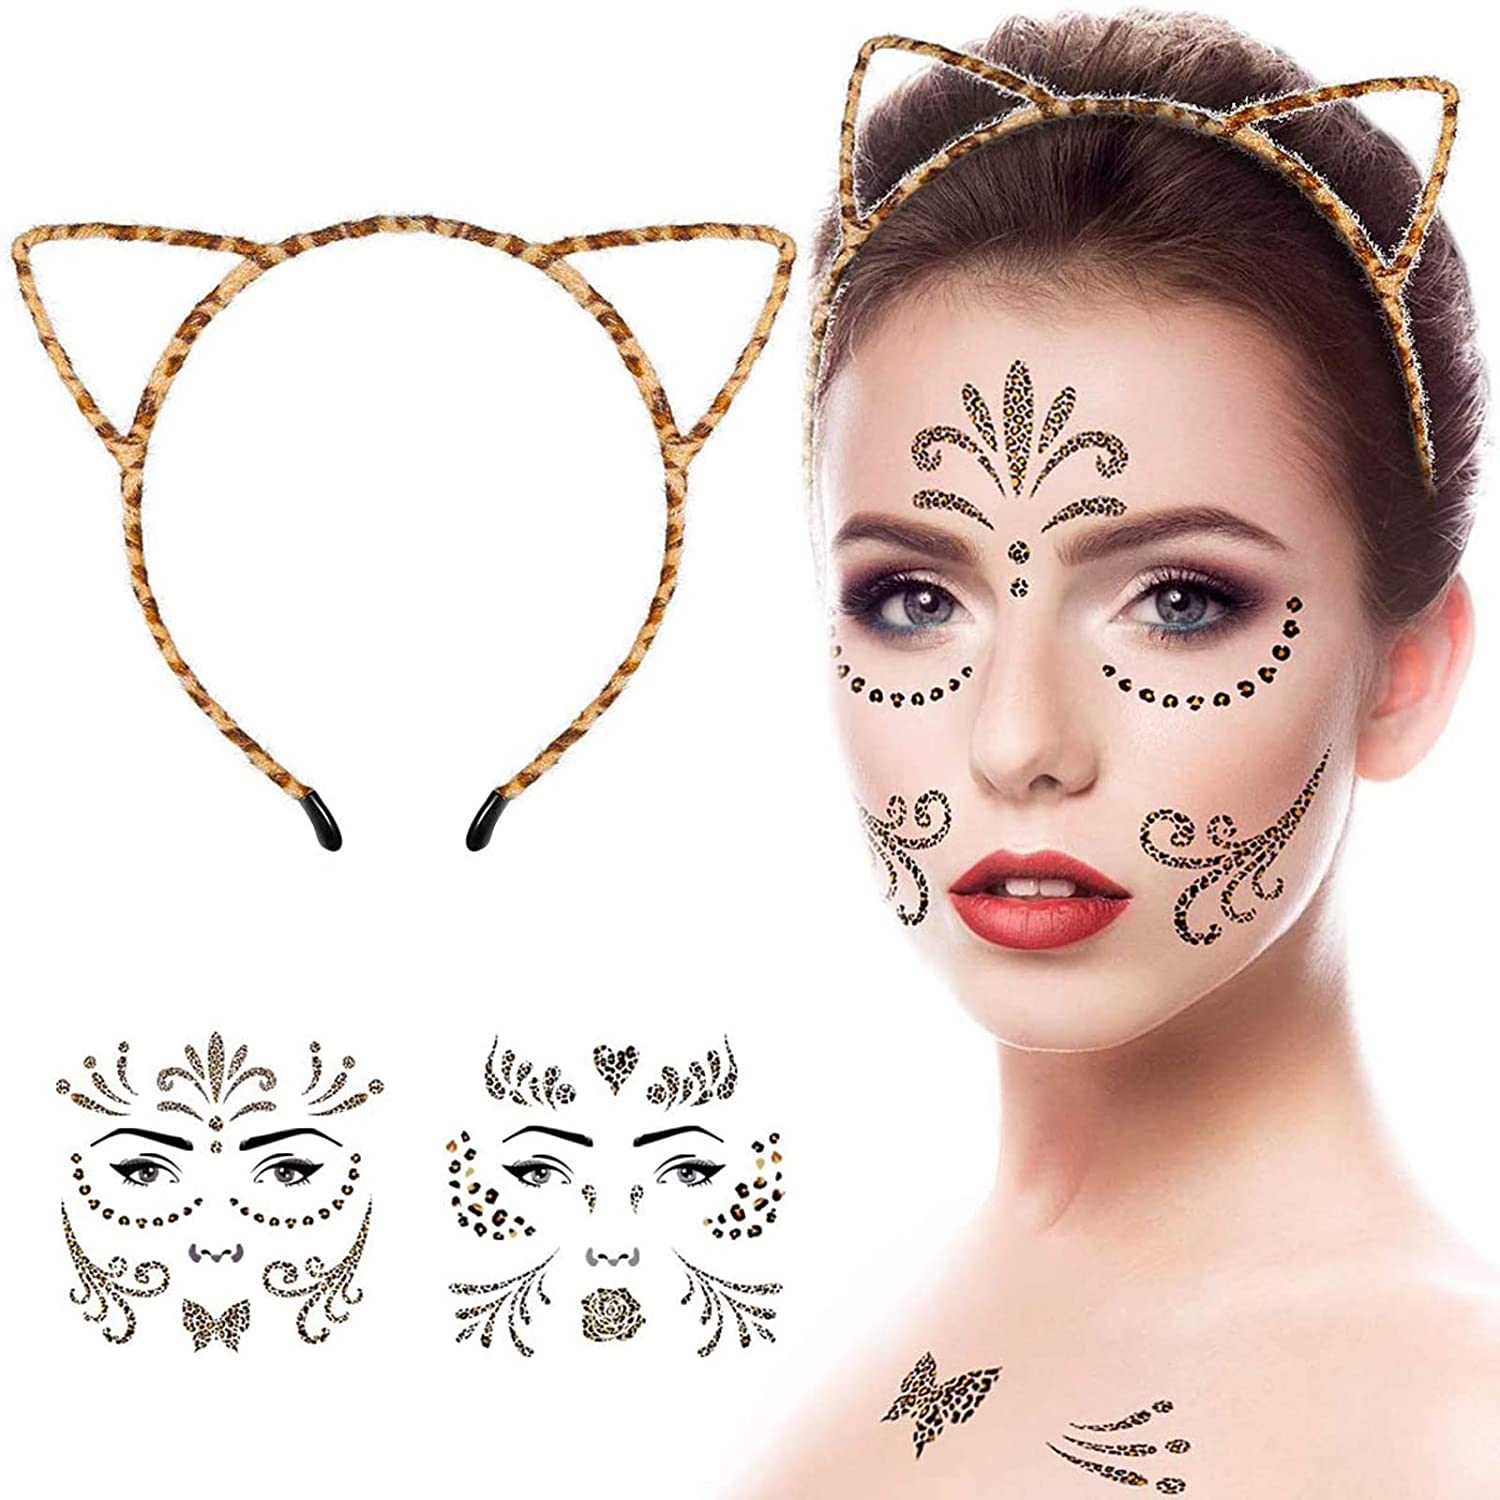 Cat Ear Headband and 2 Temporary Tattoos Stickers, Headbands and Fake Tattoos for Women, Girls or Kids